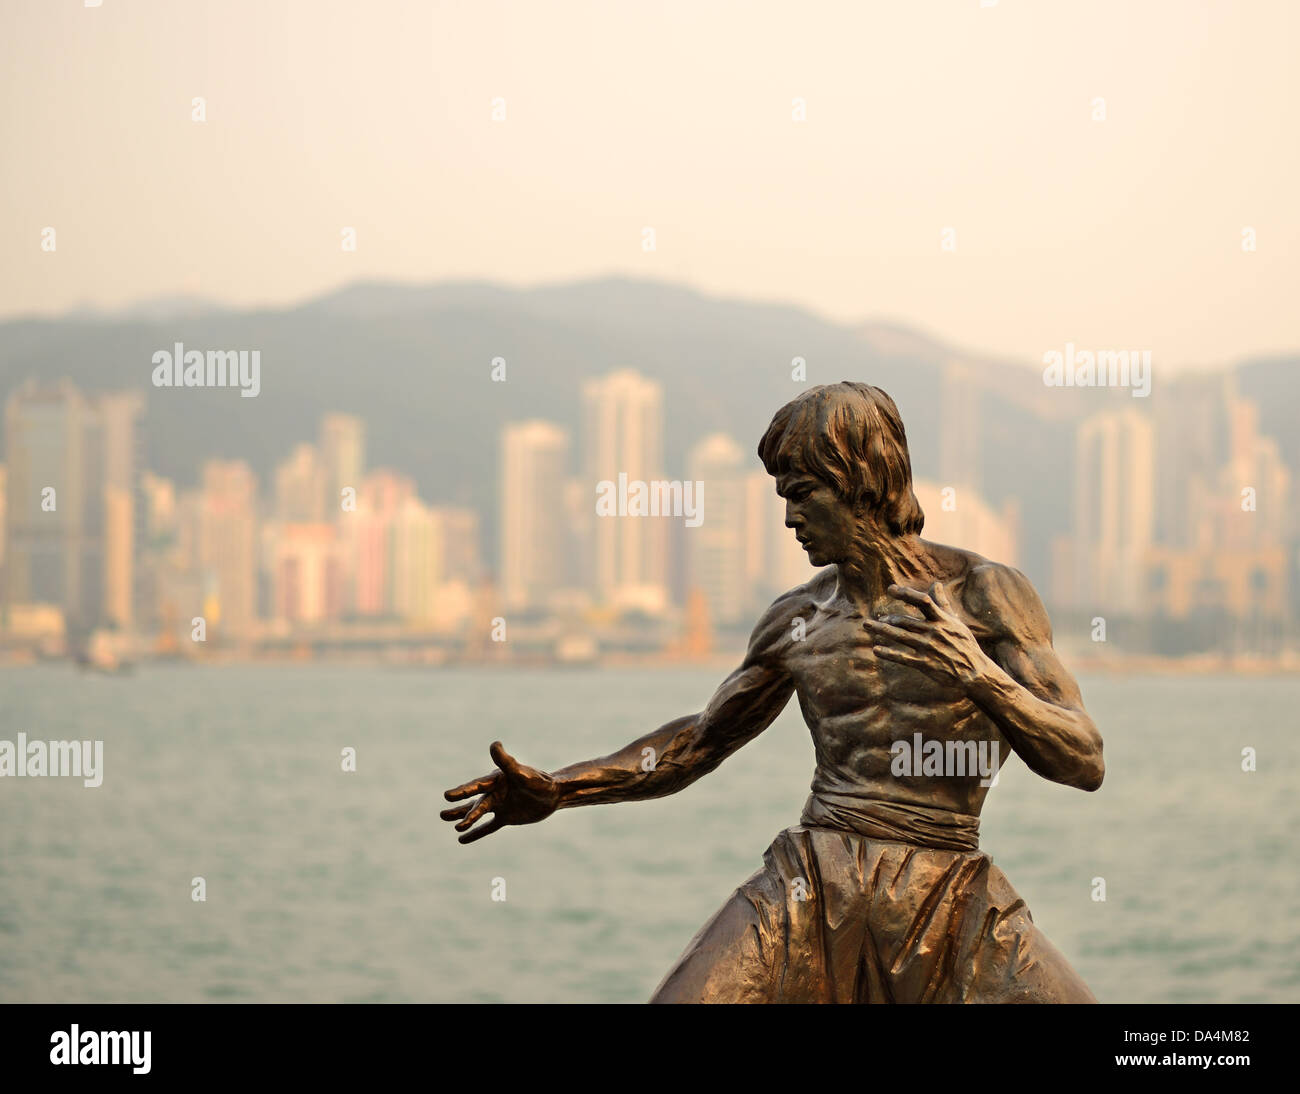 Bruce Lee monument at the Avenue of the Stars in Hong Kong, China. - Stock Image